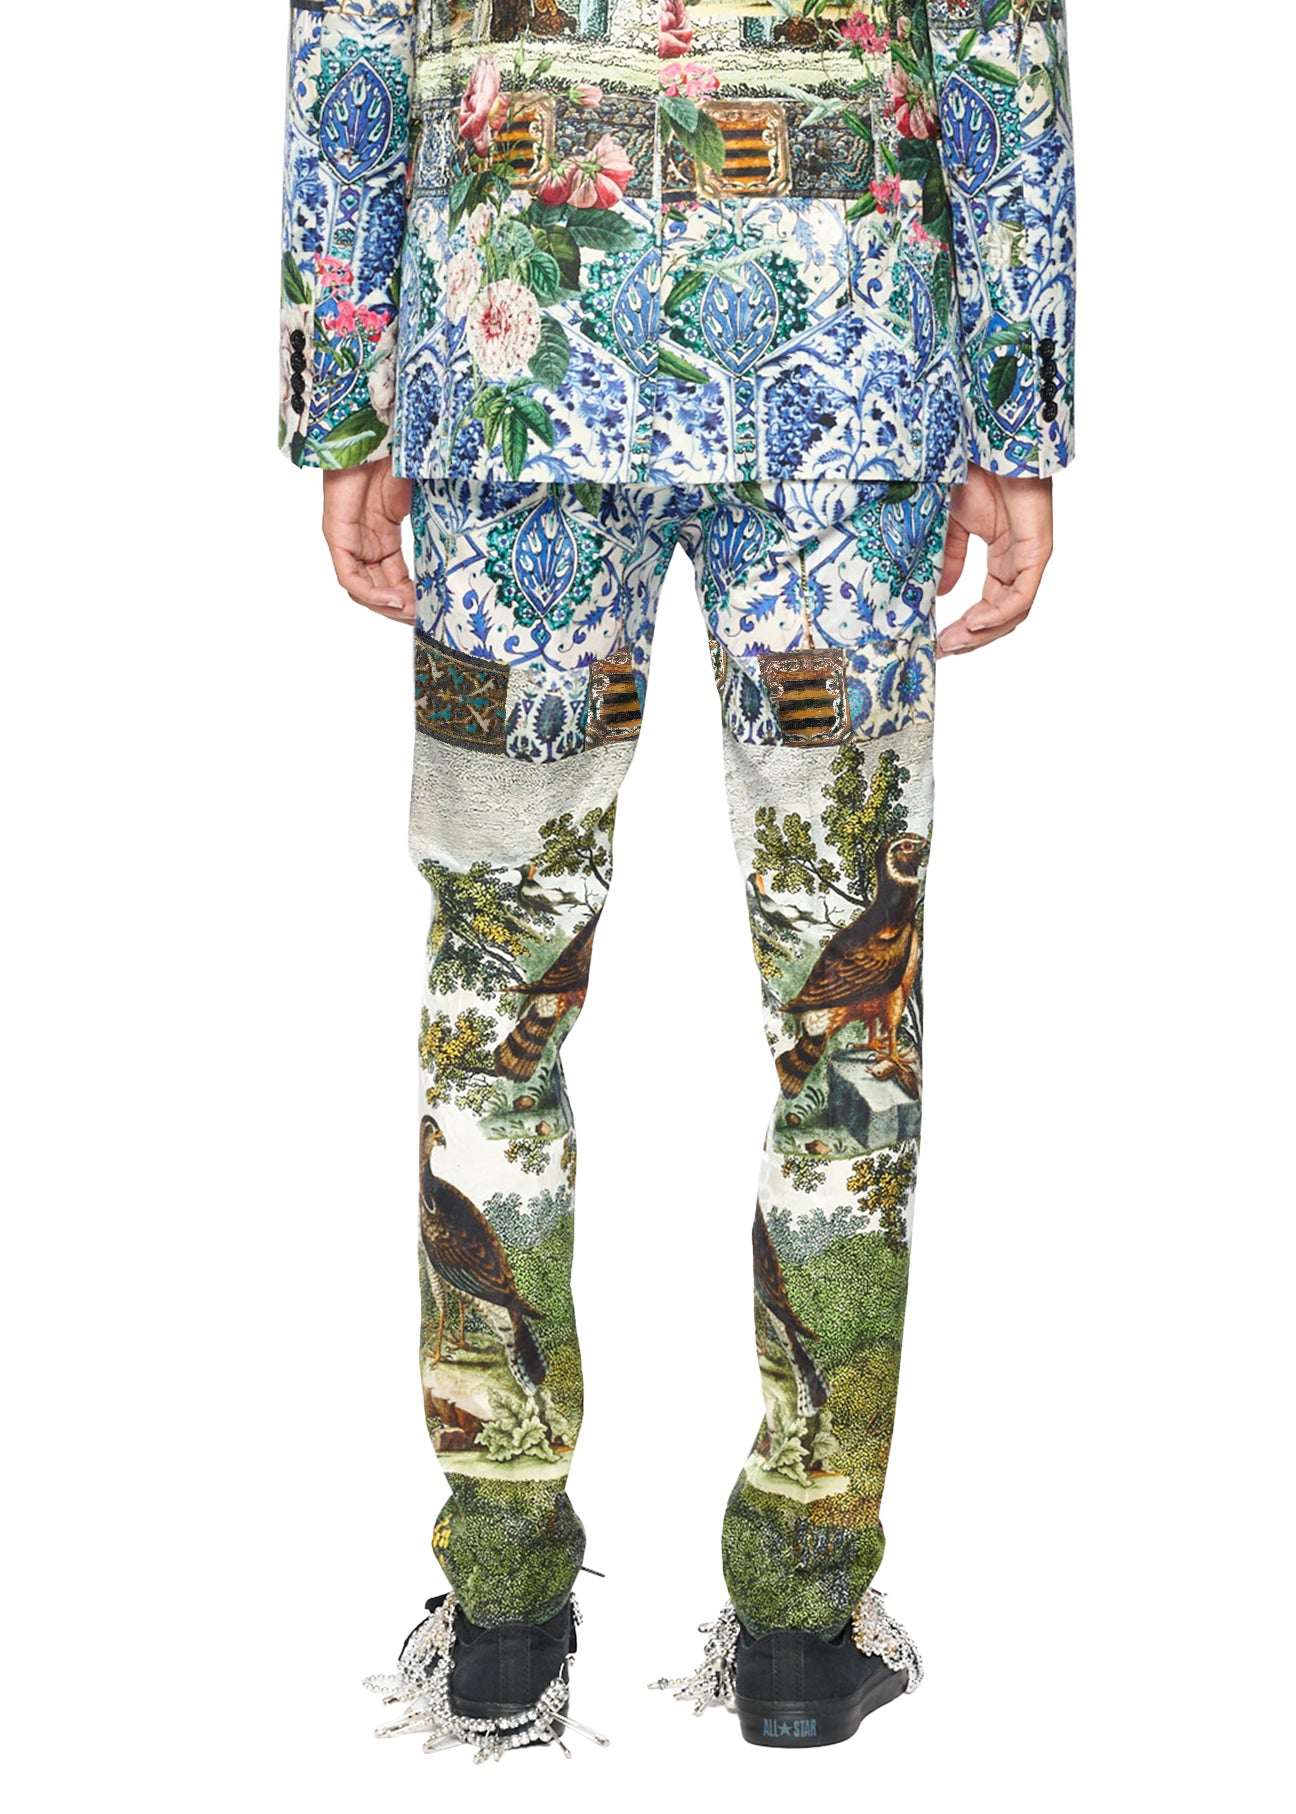 'Ottoman Empire Birds' Trousers - Men's Bottoms - Libertine